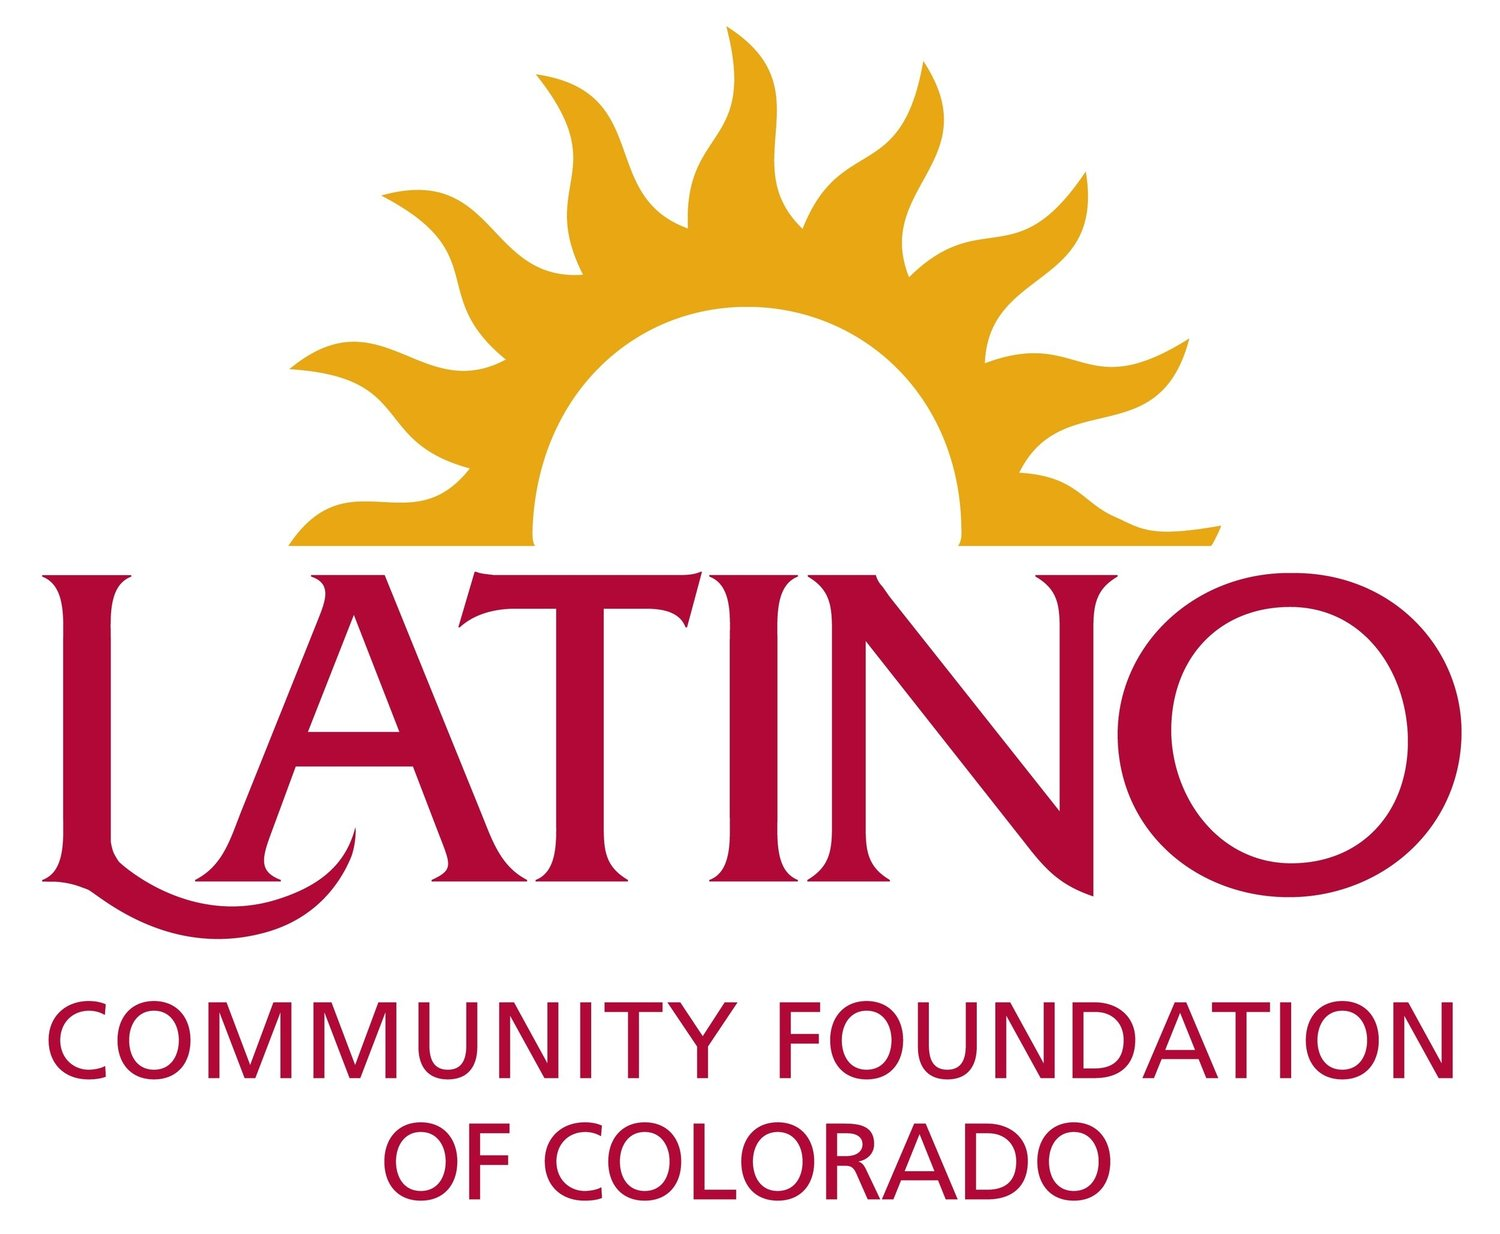 Latino Community Foundation of Colorado